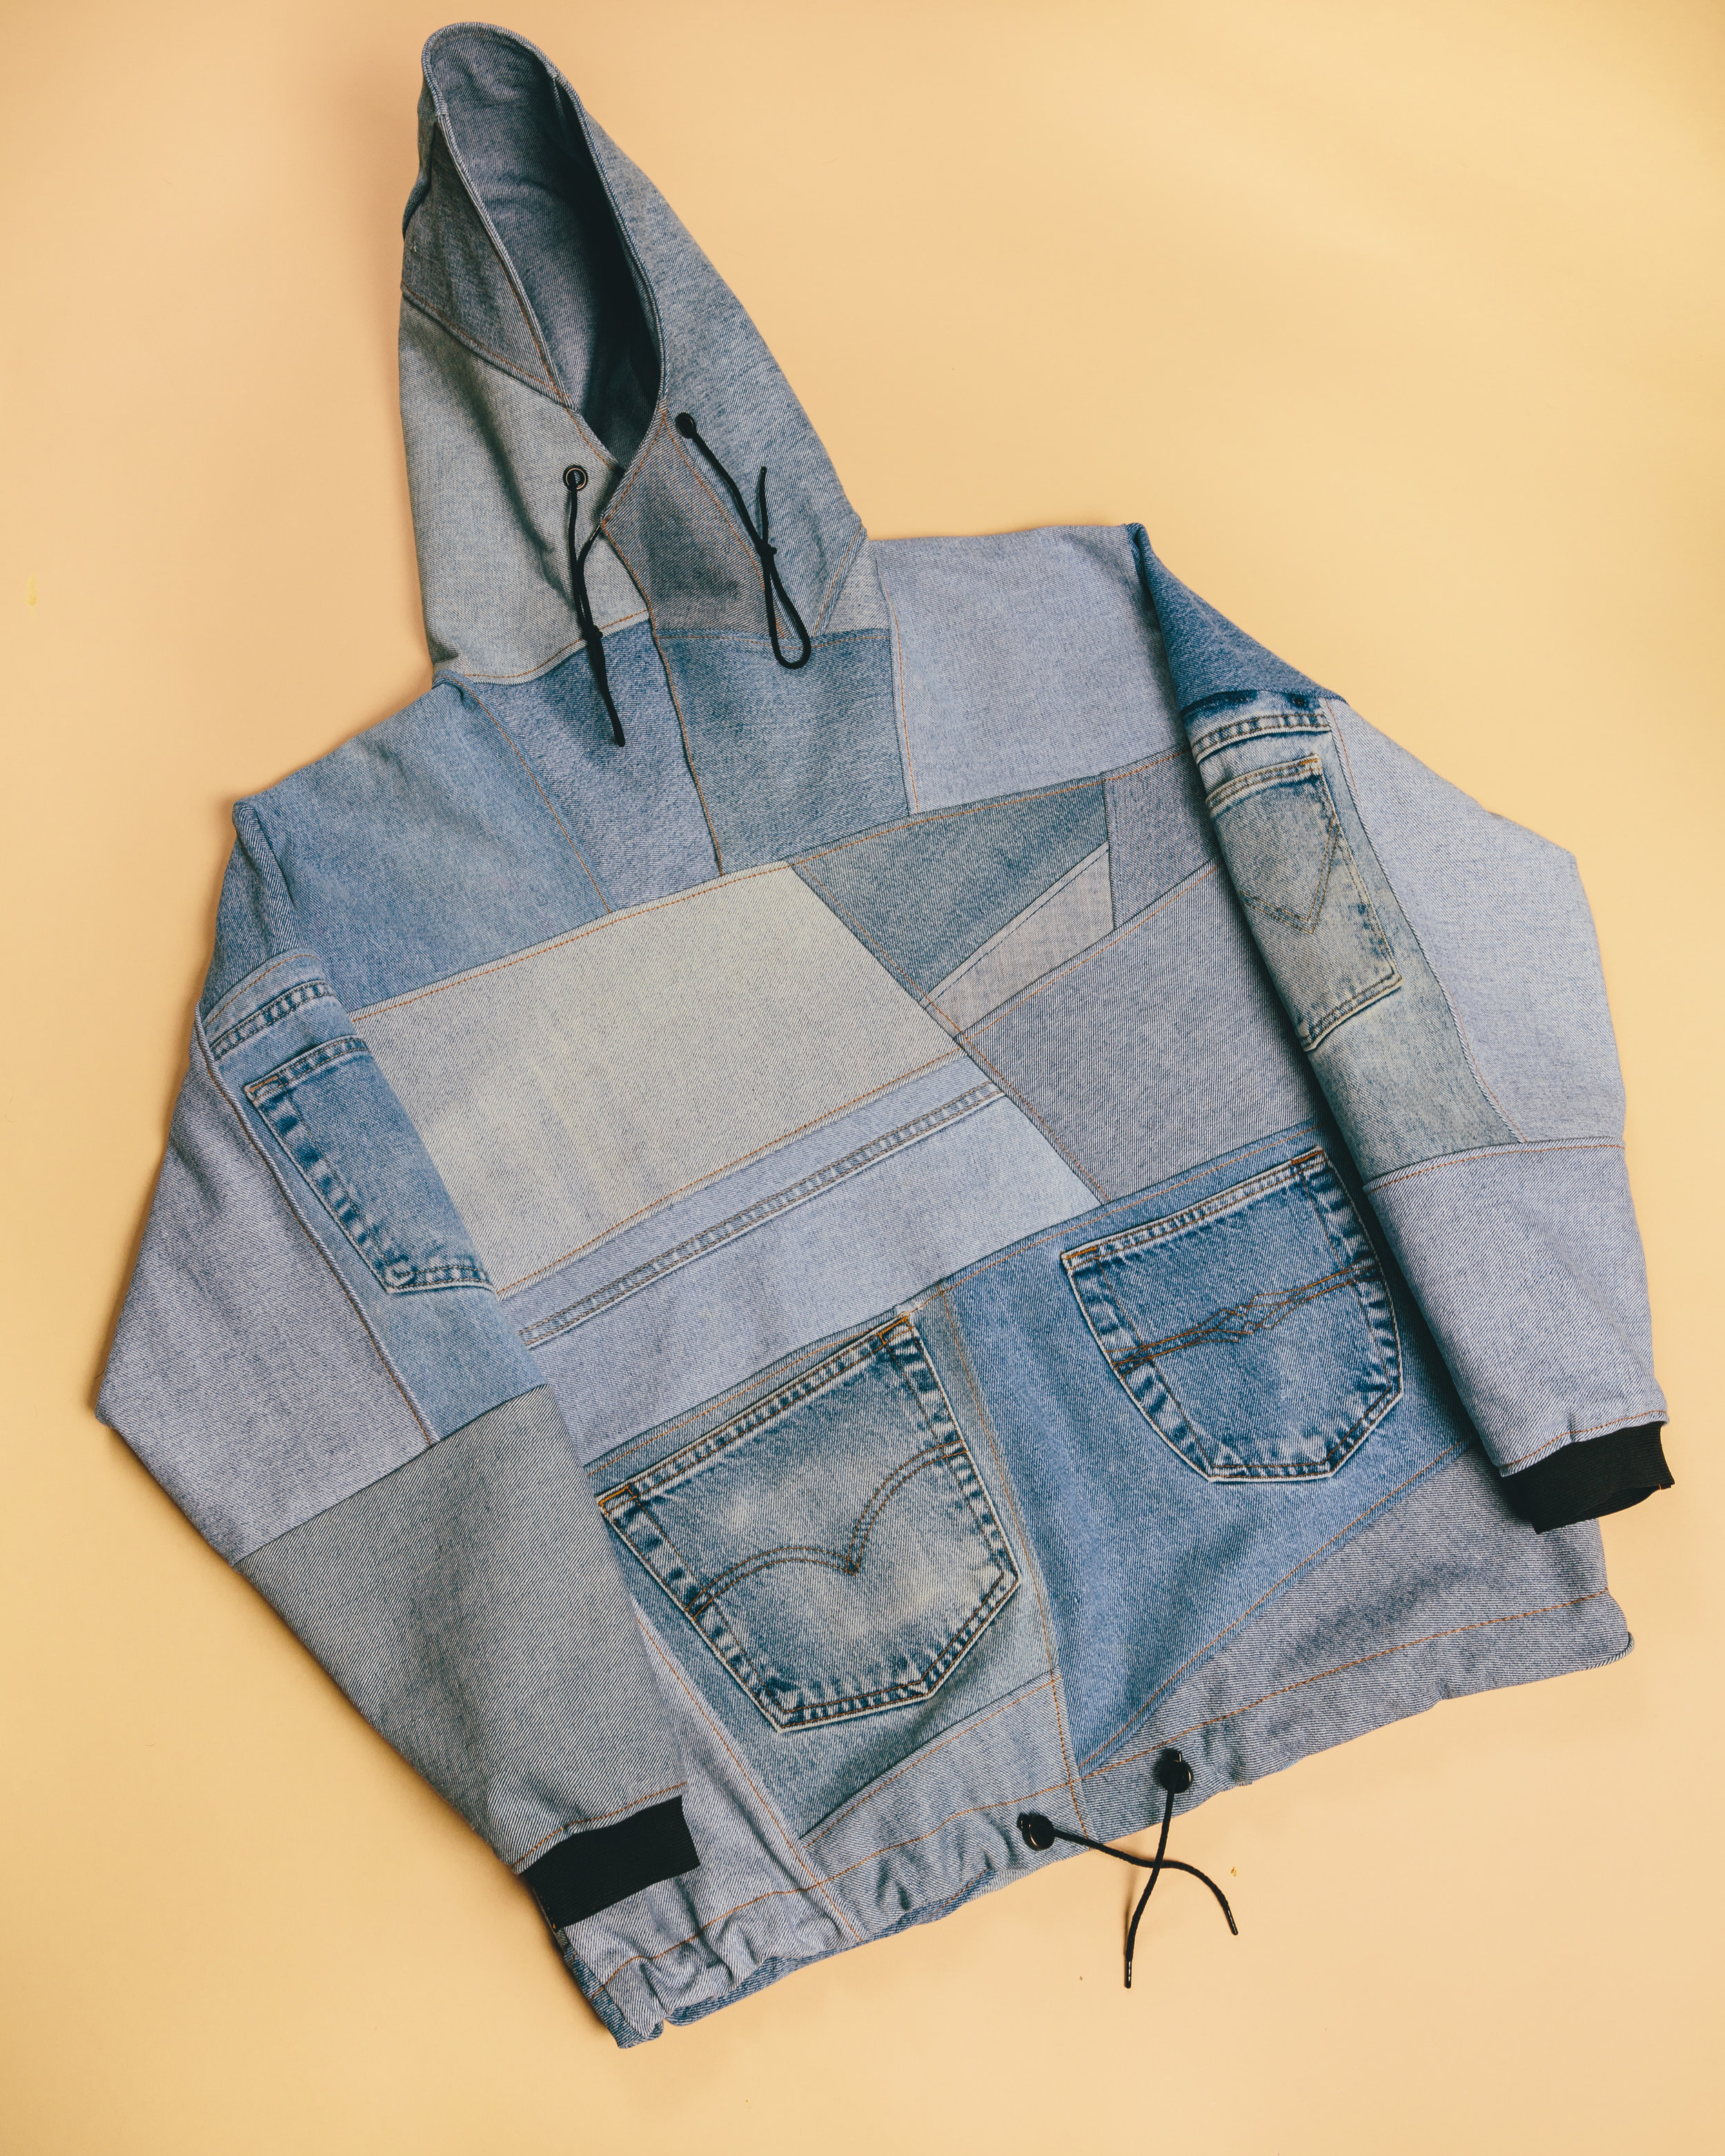 Jean Anorak - 1 of 1 inspired by military anorak's